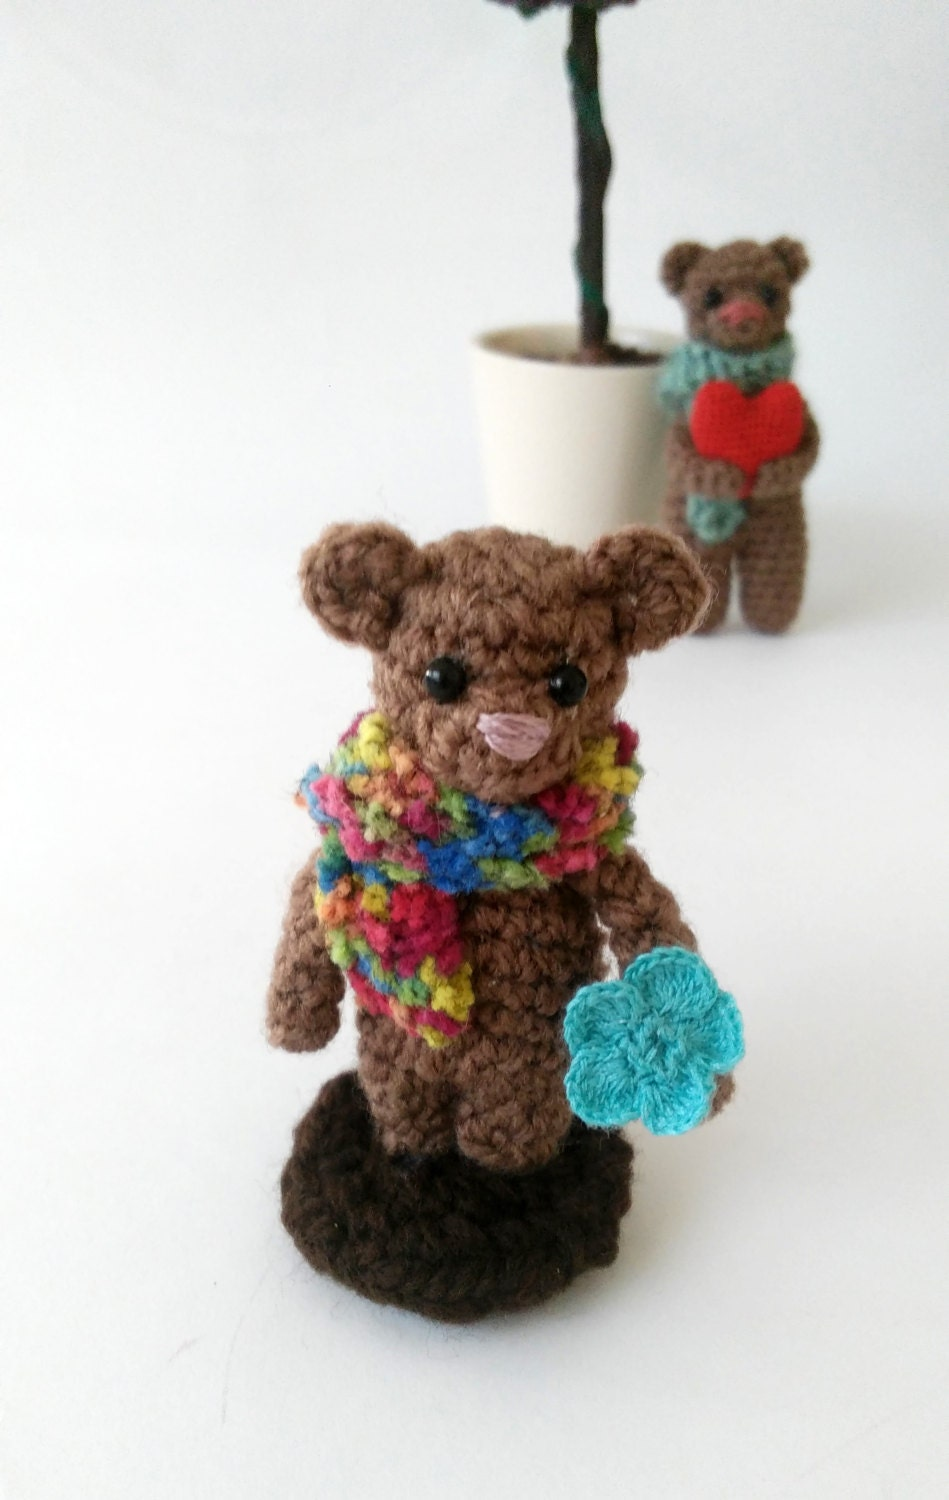 Amigurumi Mini Doll : Crochet bear doll amigurumi mini